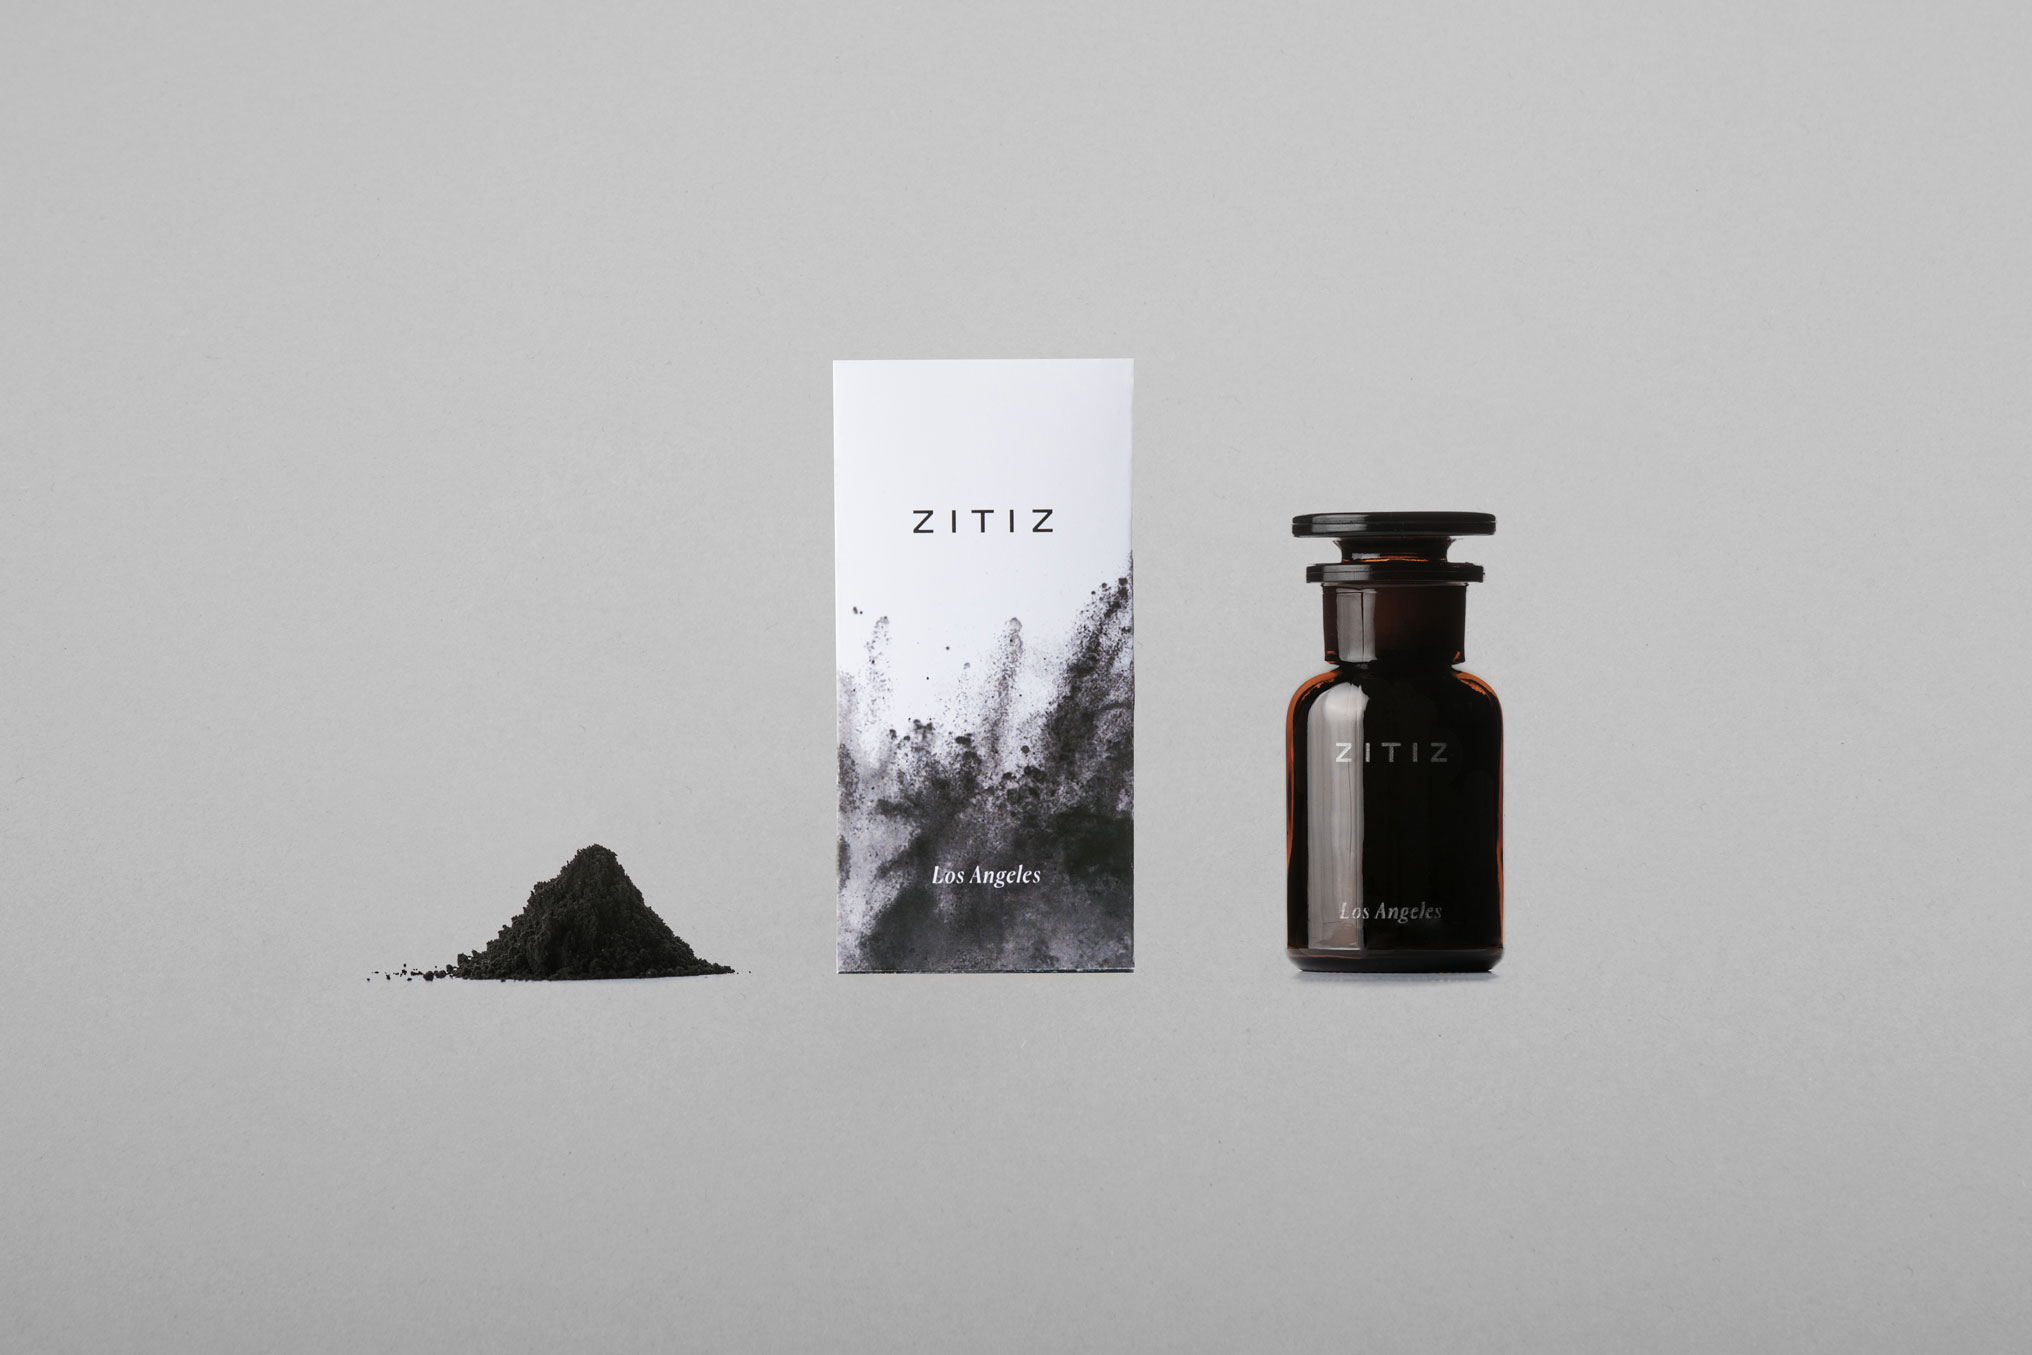 projects-georgschober-zitiz-packagings-bottle